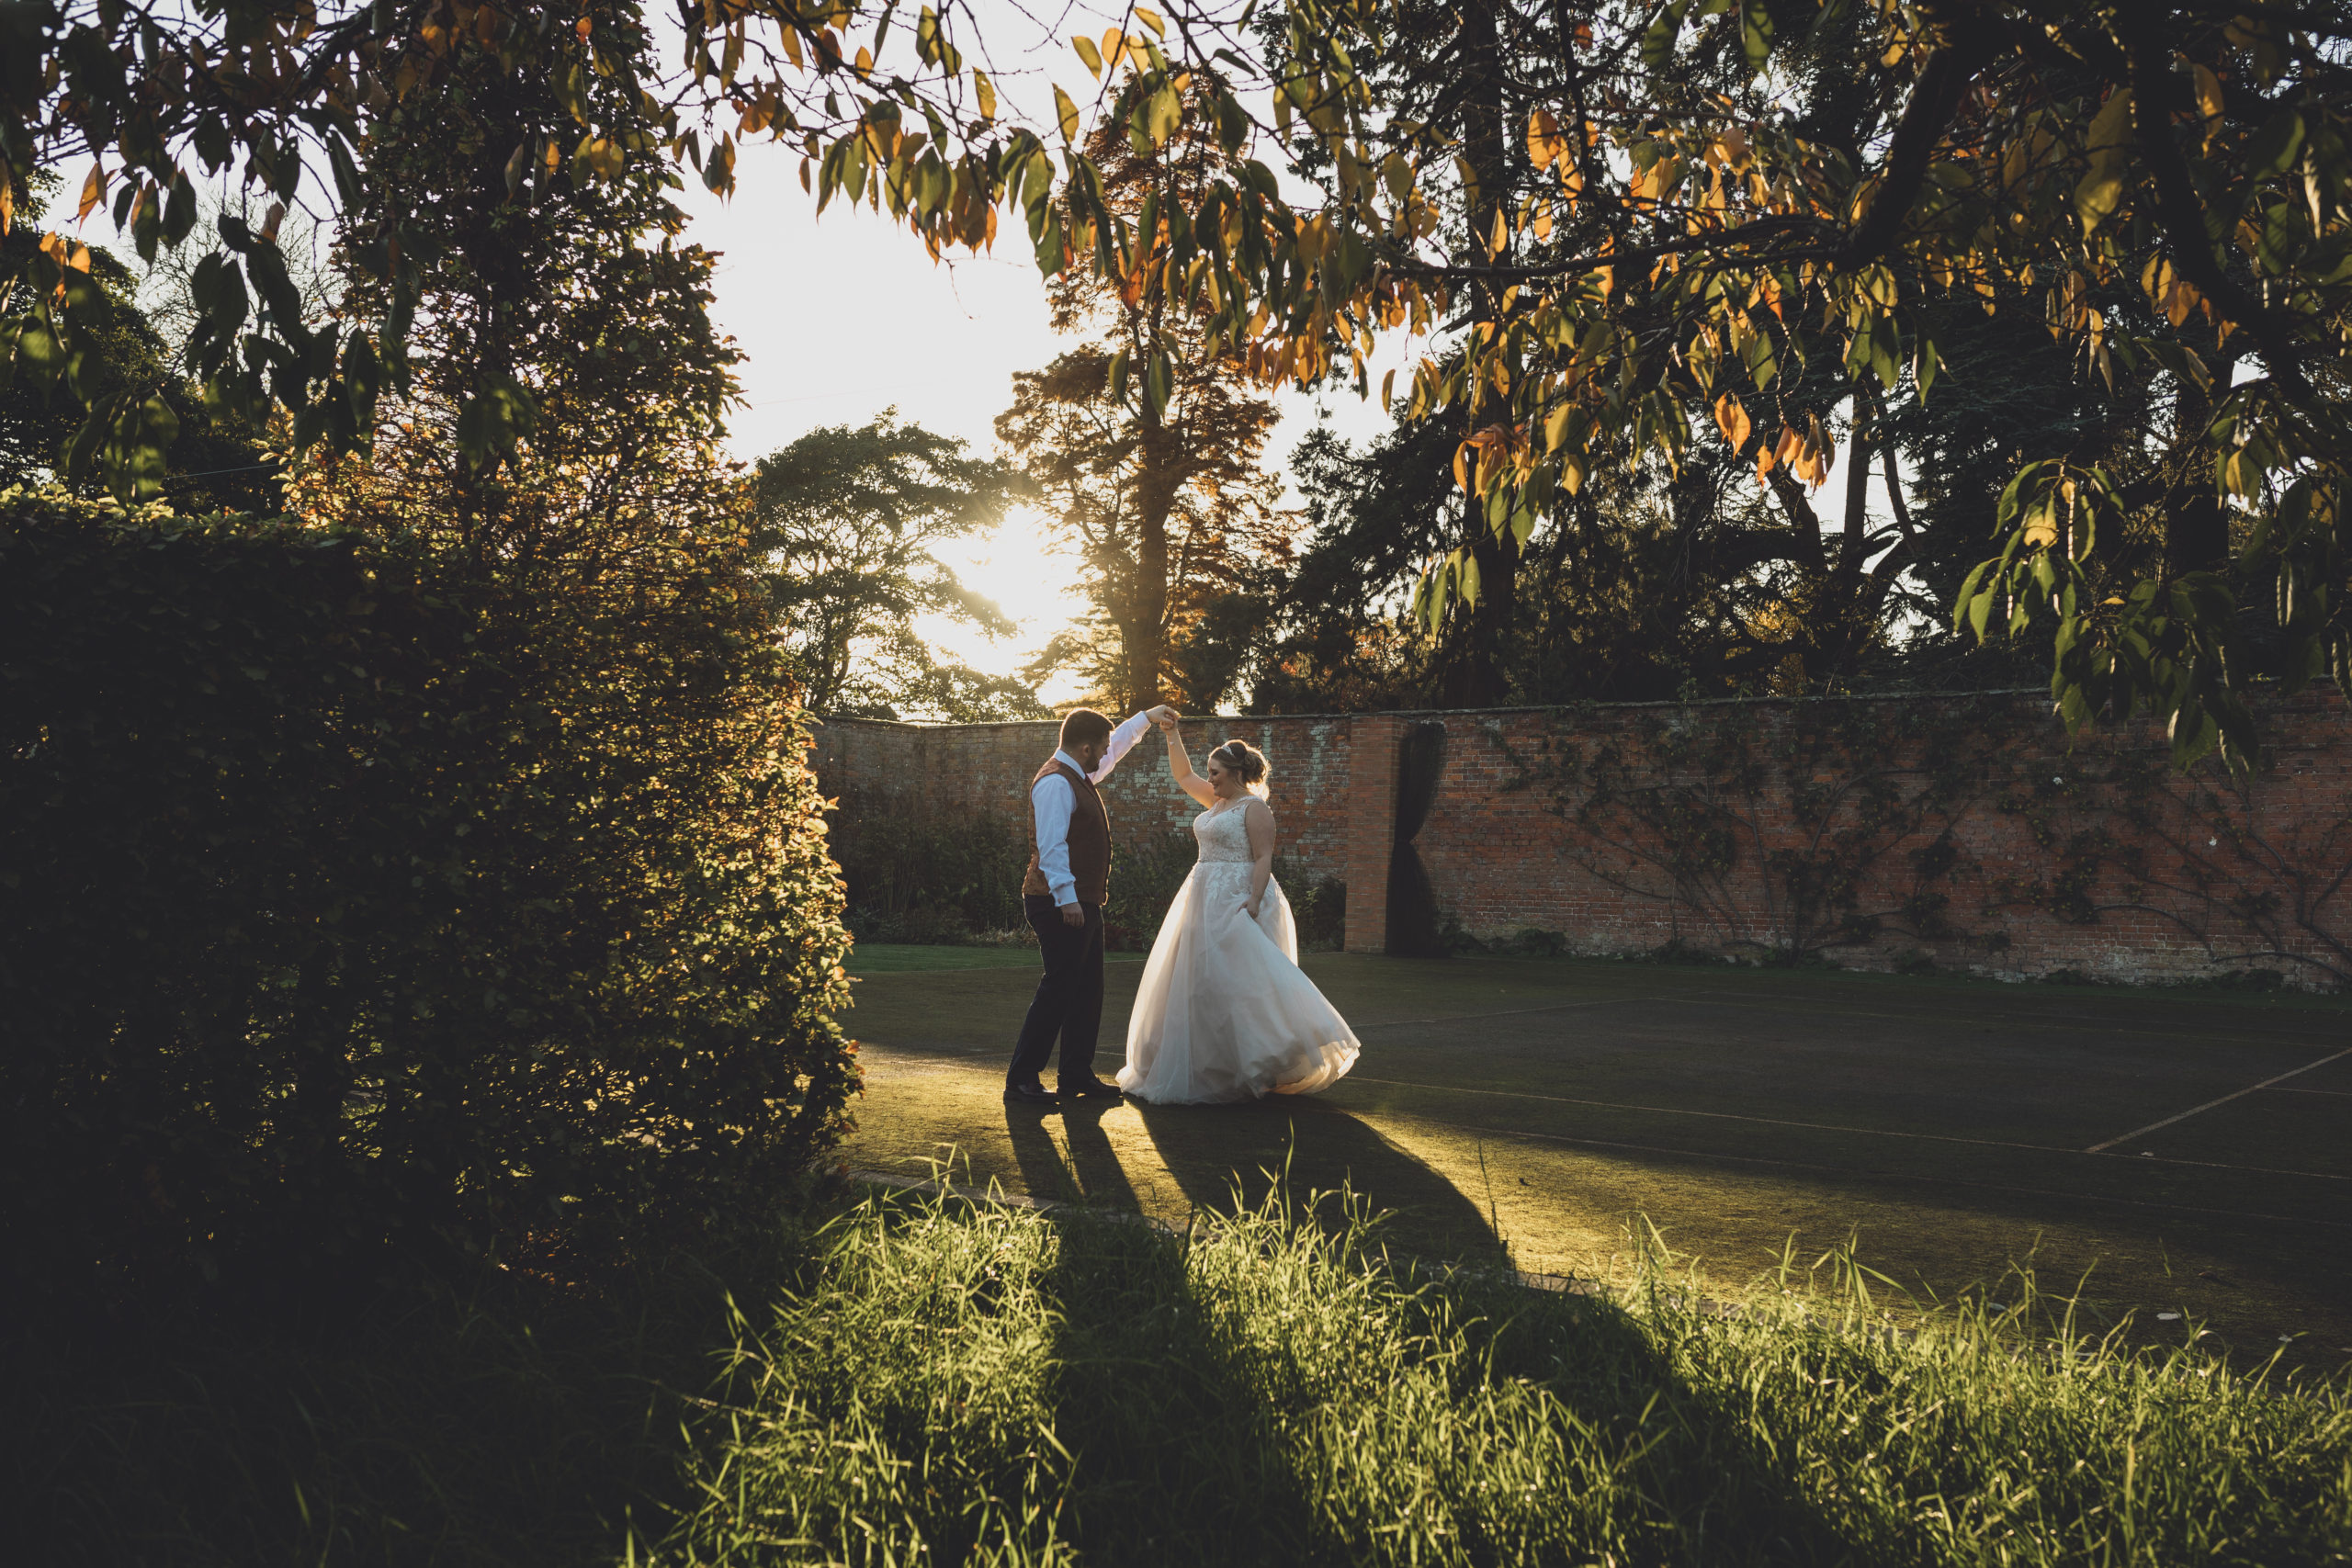 Golden hour wedding photography - a dance at sunset at Combermere Abbey